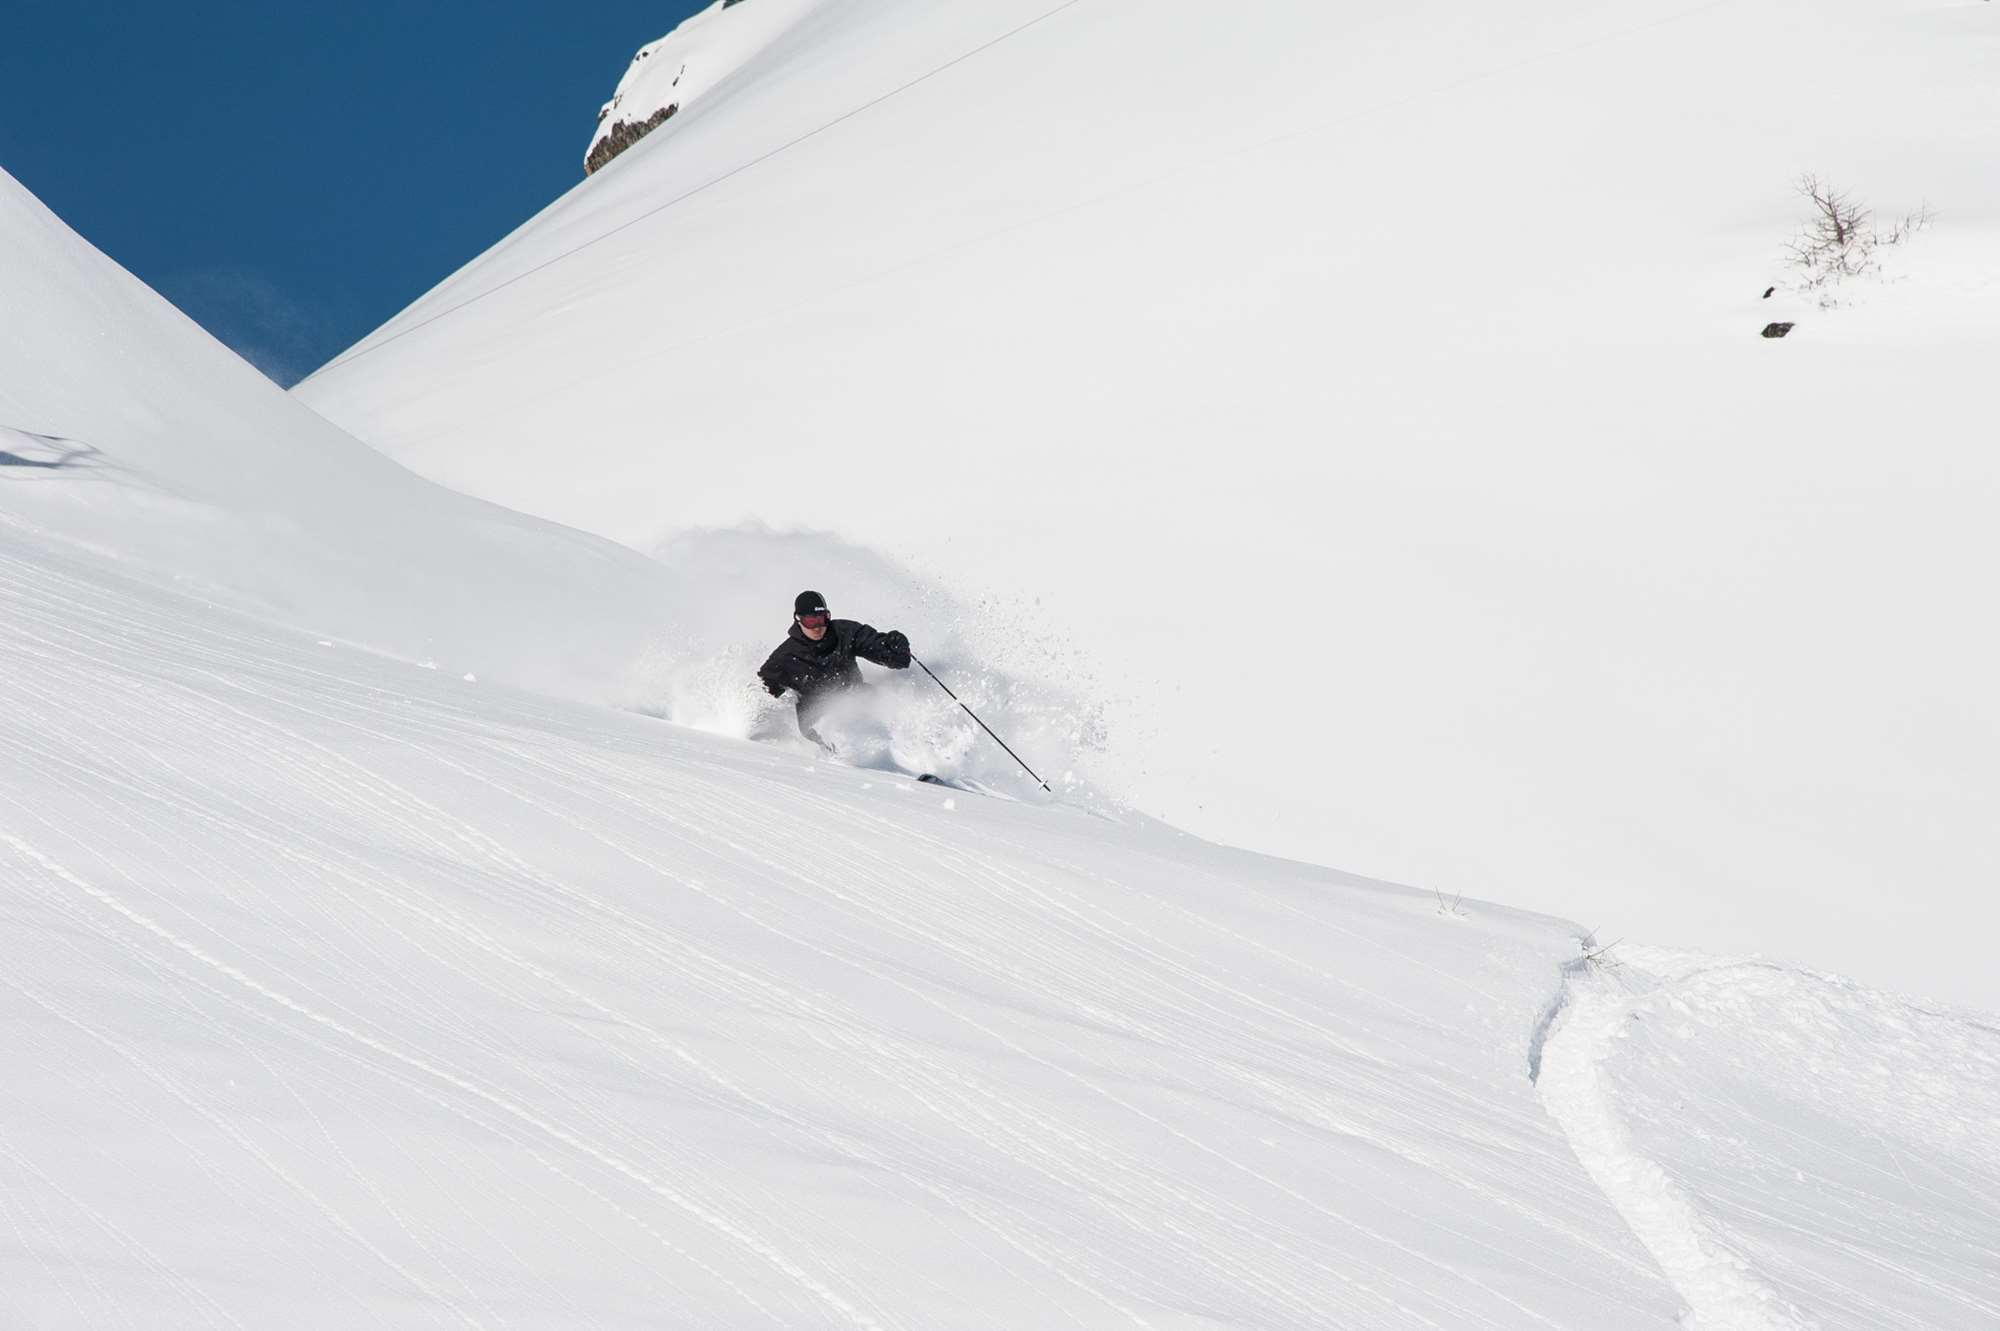 Playing in the powder in Serre chevalier